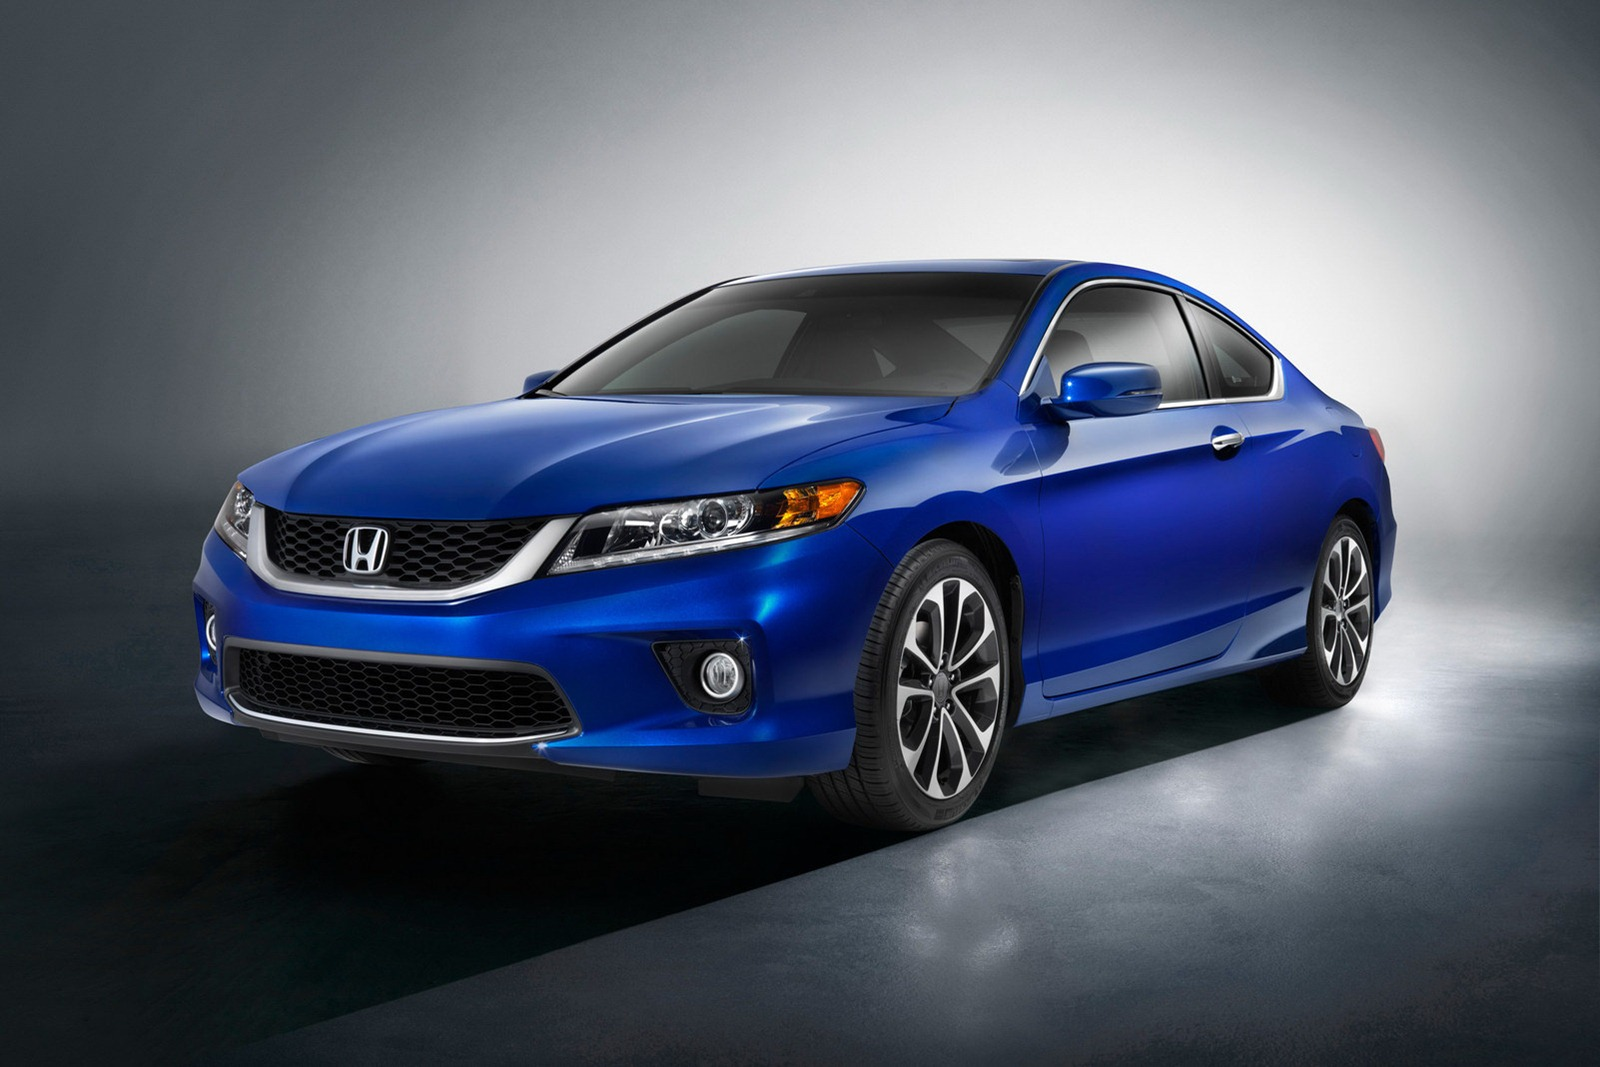 2013 Honda Accord Coupe 2013 Honda Accord Sedan and Coupe compact four wheelers